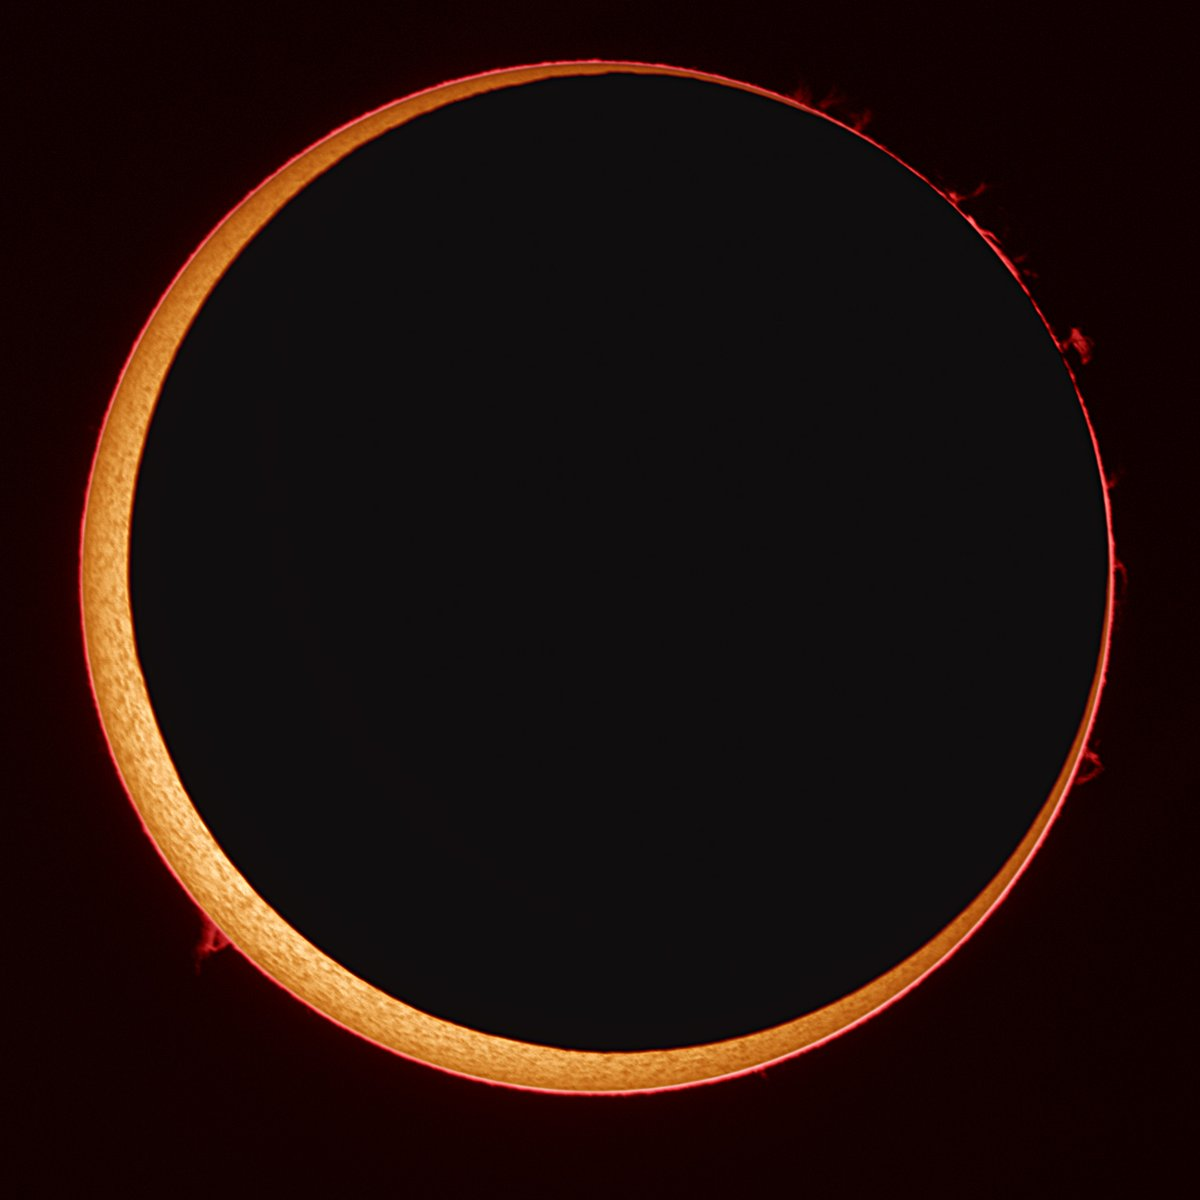 #IAUoutreach Numerous NOCs are supporting observations of the 21 June 2020 eclipse with livestreams, in-person events and educational resources See the NOC Eclipse Resource webpage here: iau.org/public/noc/ecl… Image credit: Stefan Seip